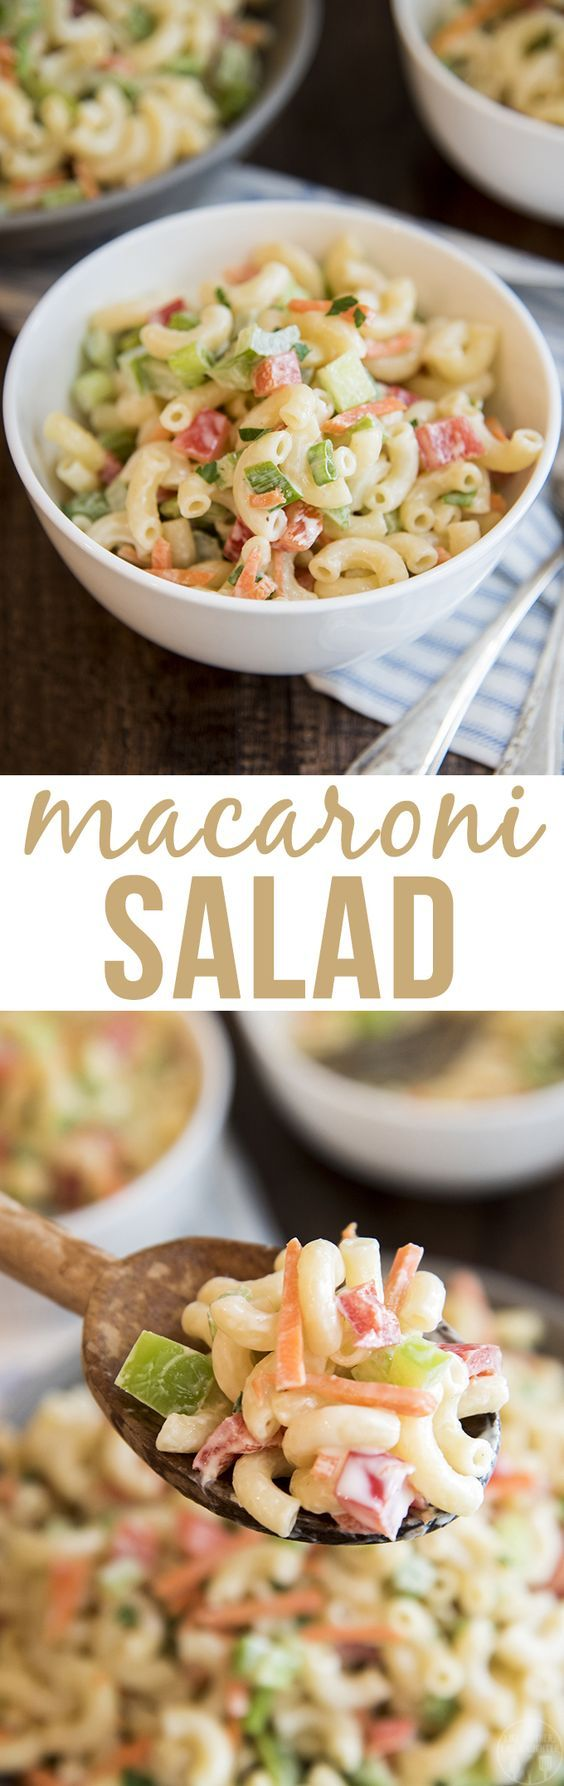 This creamy macaroni salad is loaded full of fresh crunchy vegetable